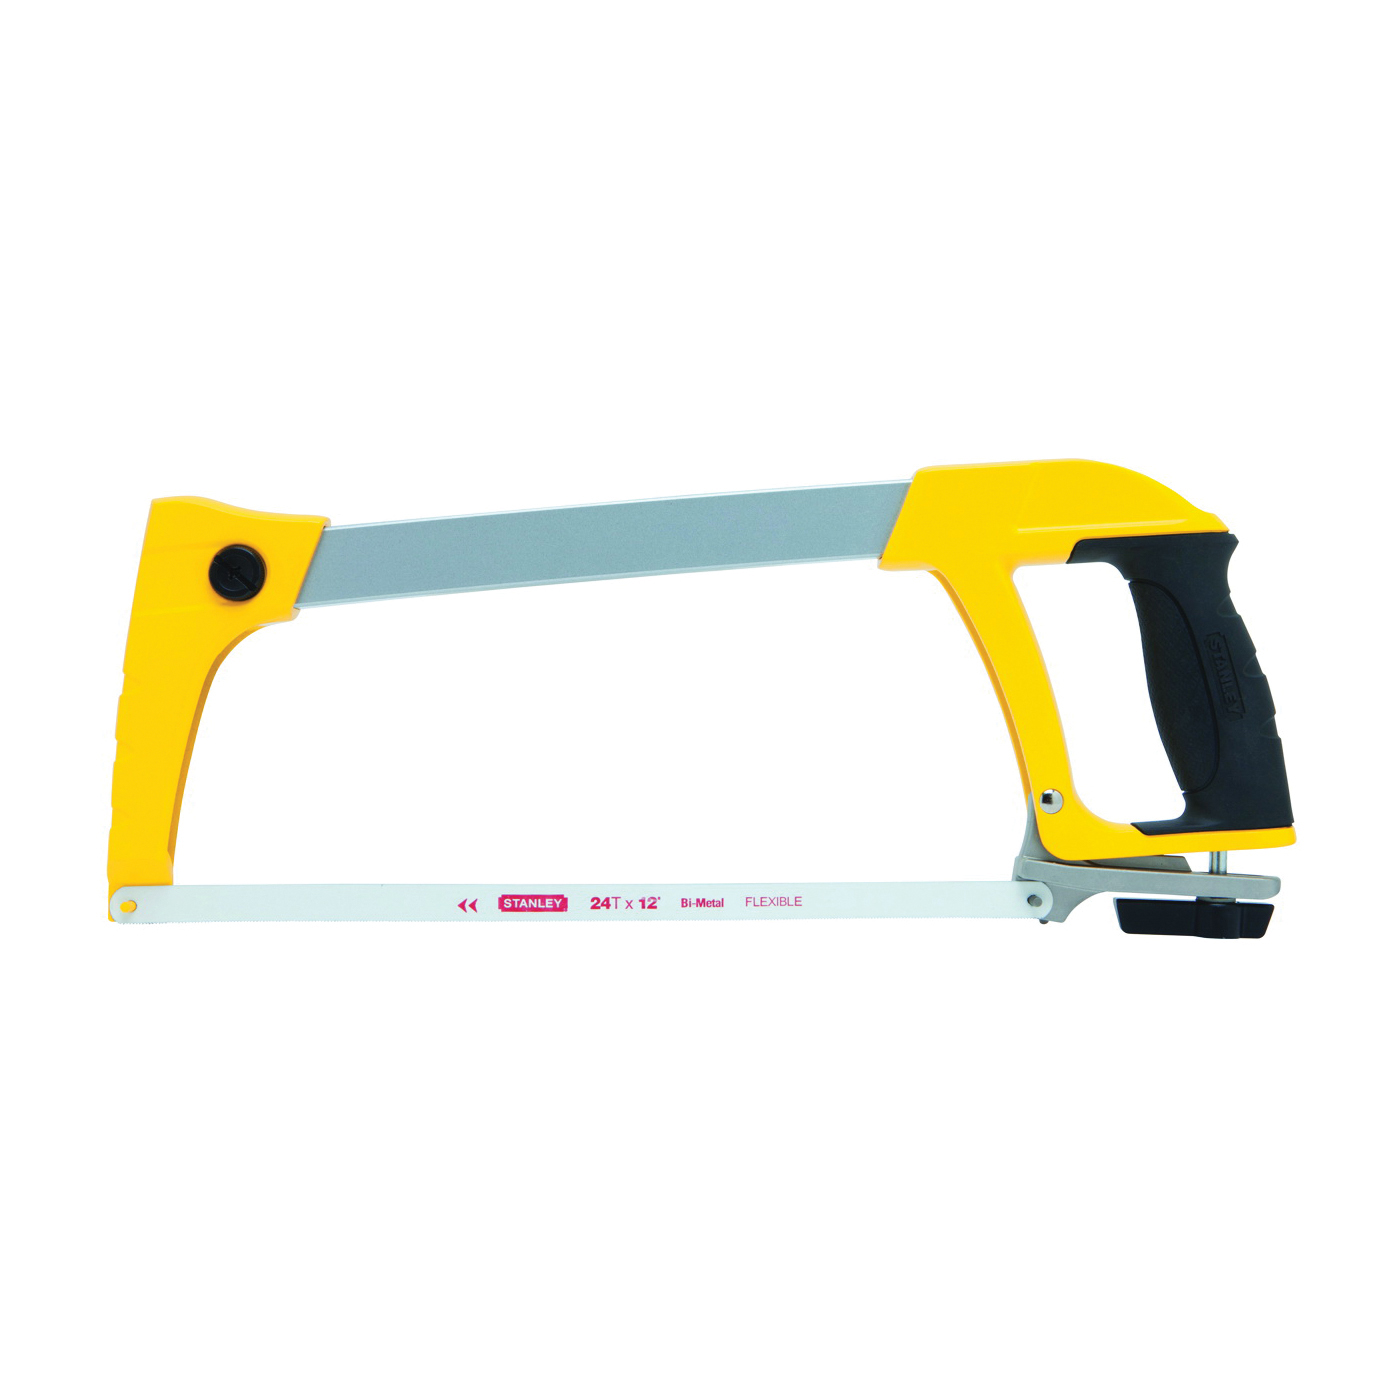 Picture of STANLEY STHT20140 Hacksaw, 12 in L Blade, 24 TPI, HCS Blade, 4-3/4 in D Throat, Tubular Metal Frame